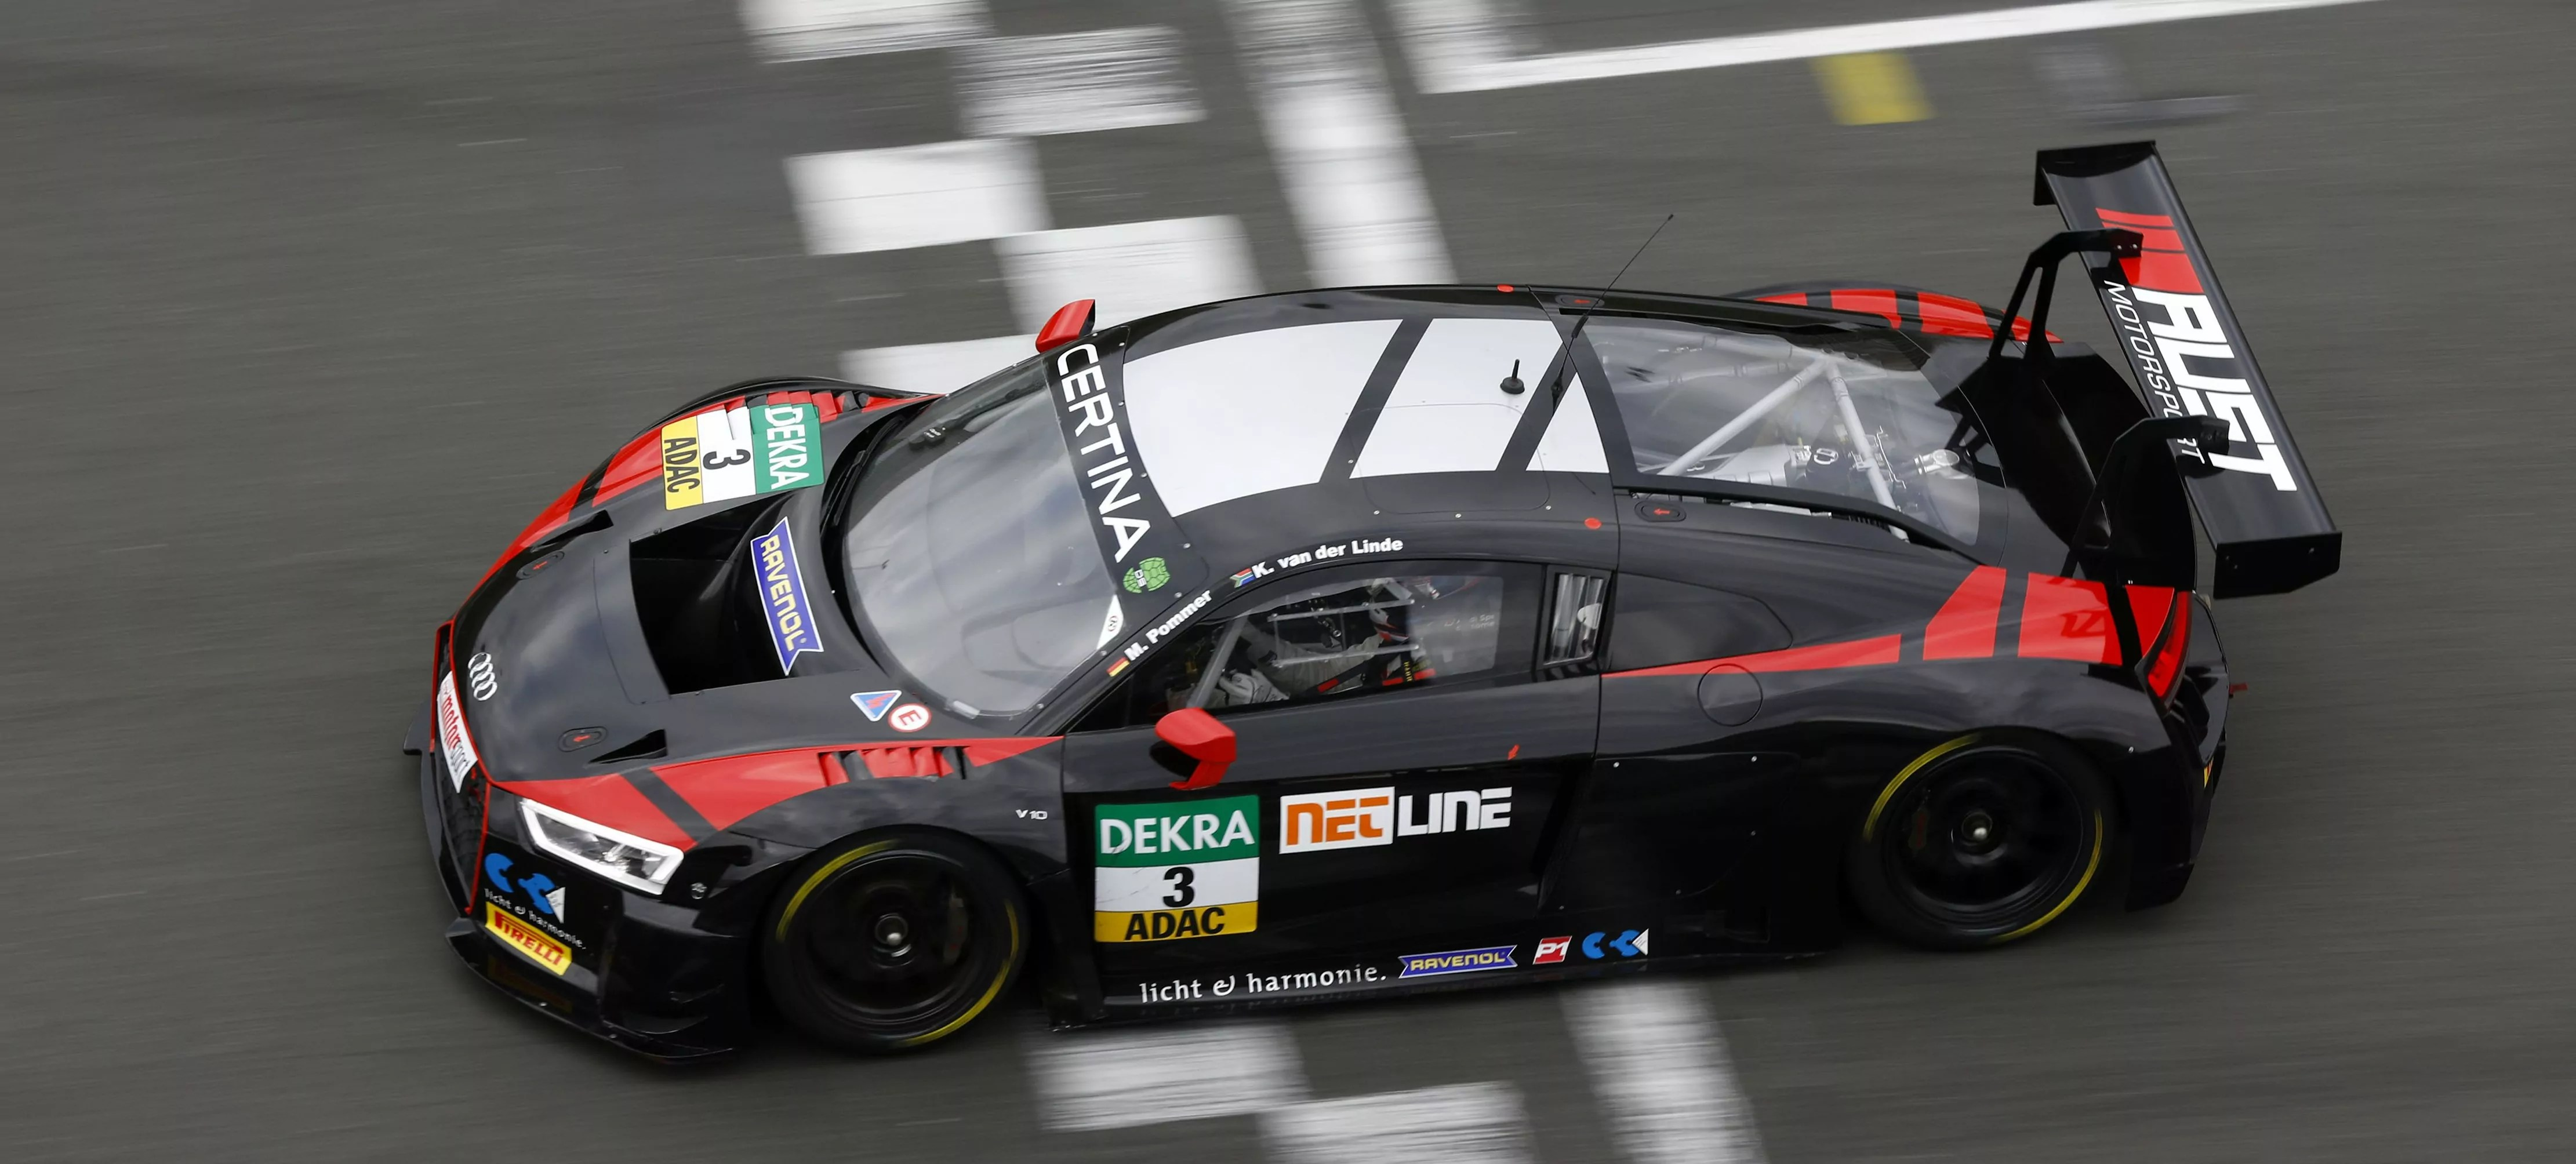 Kelvin takes on 4th GT Masters season with Aust